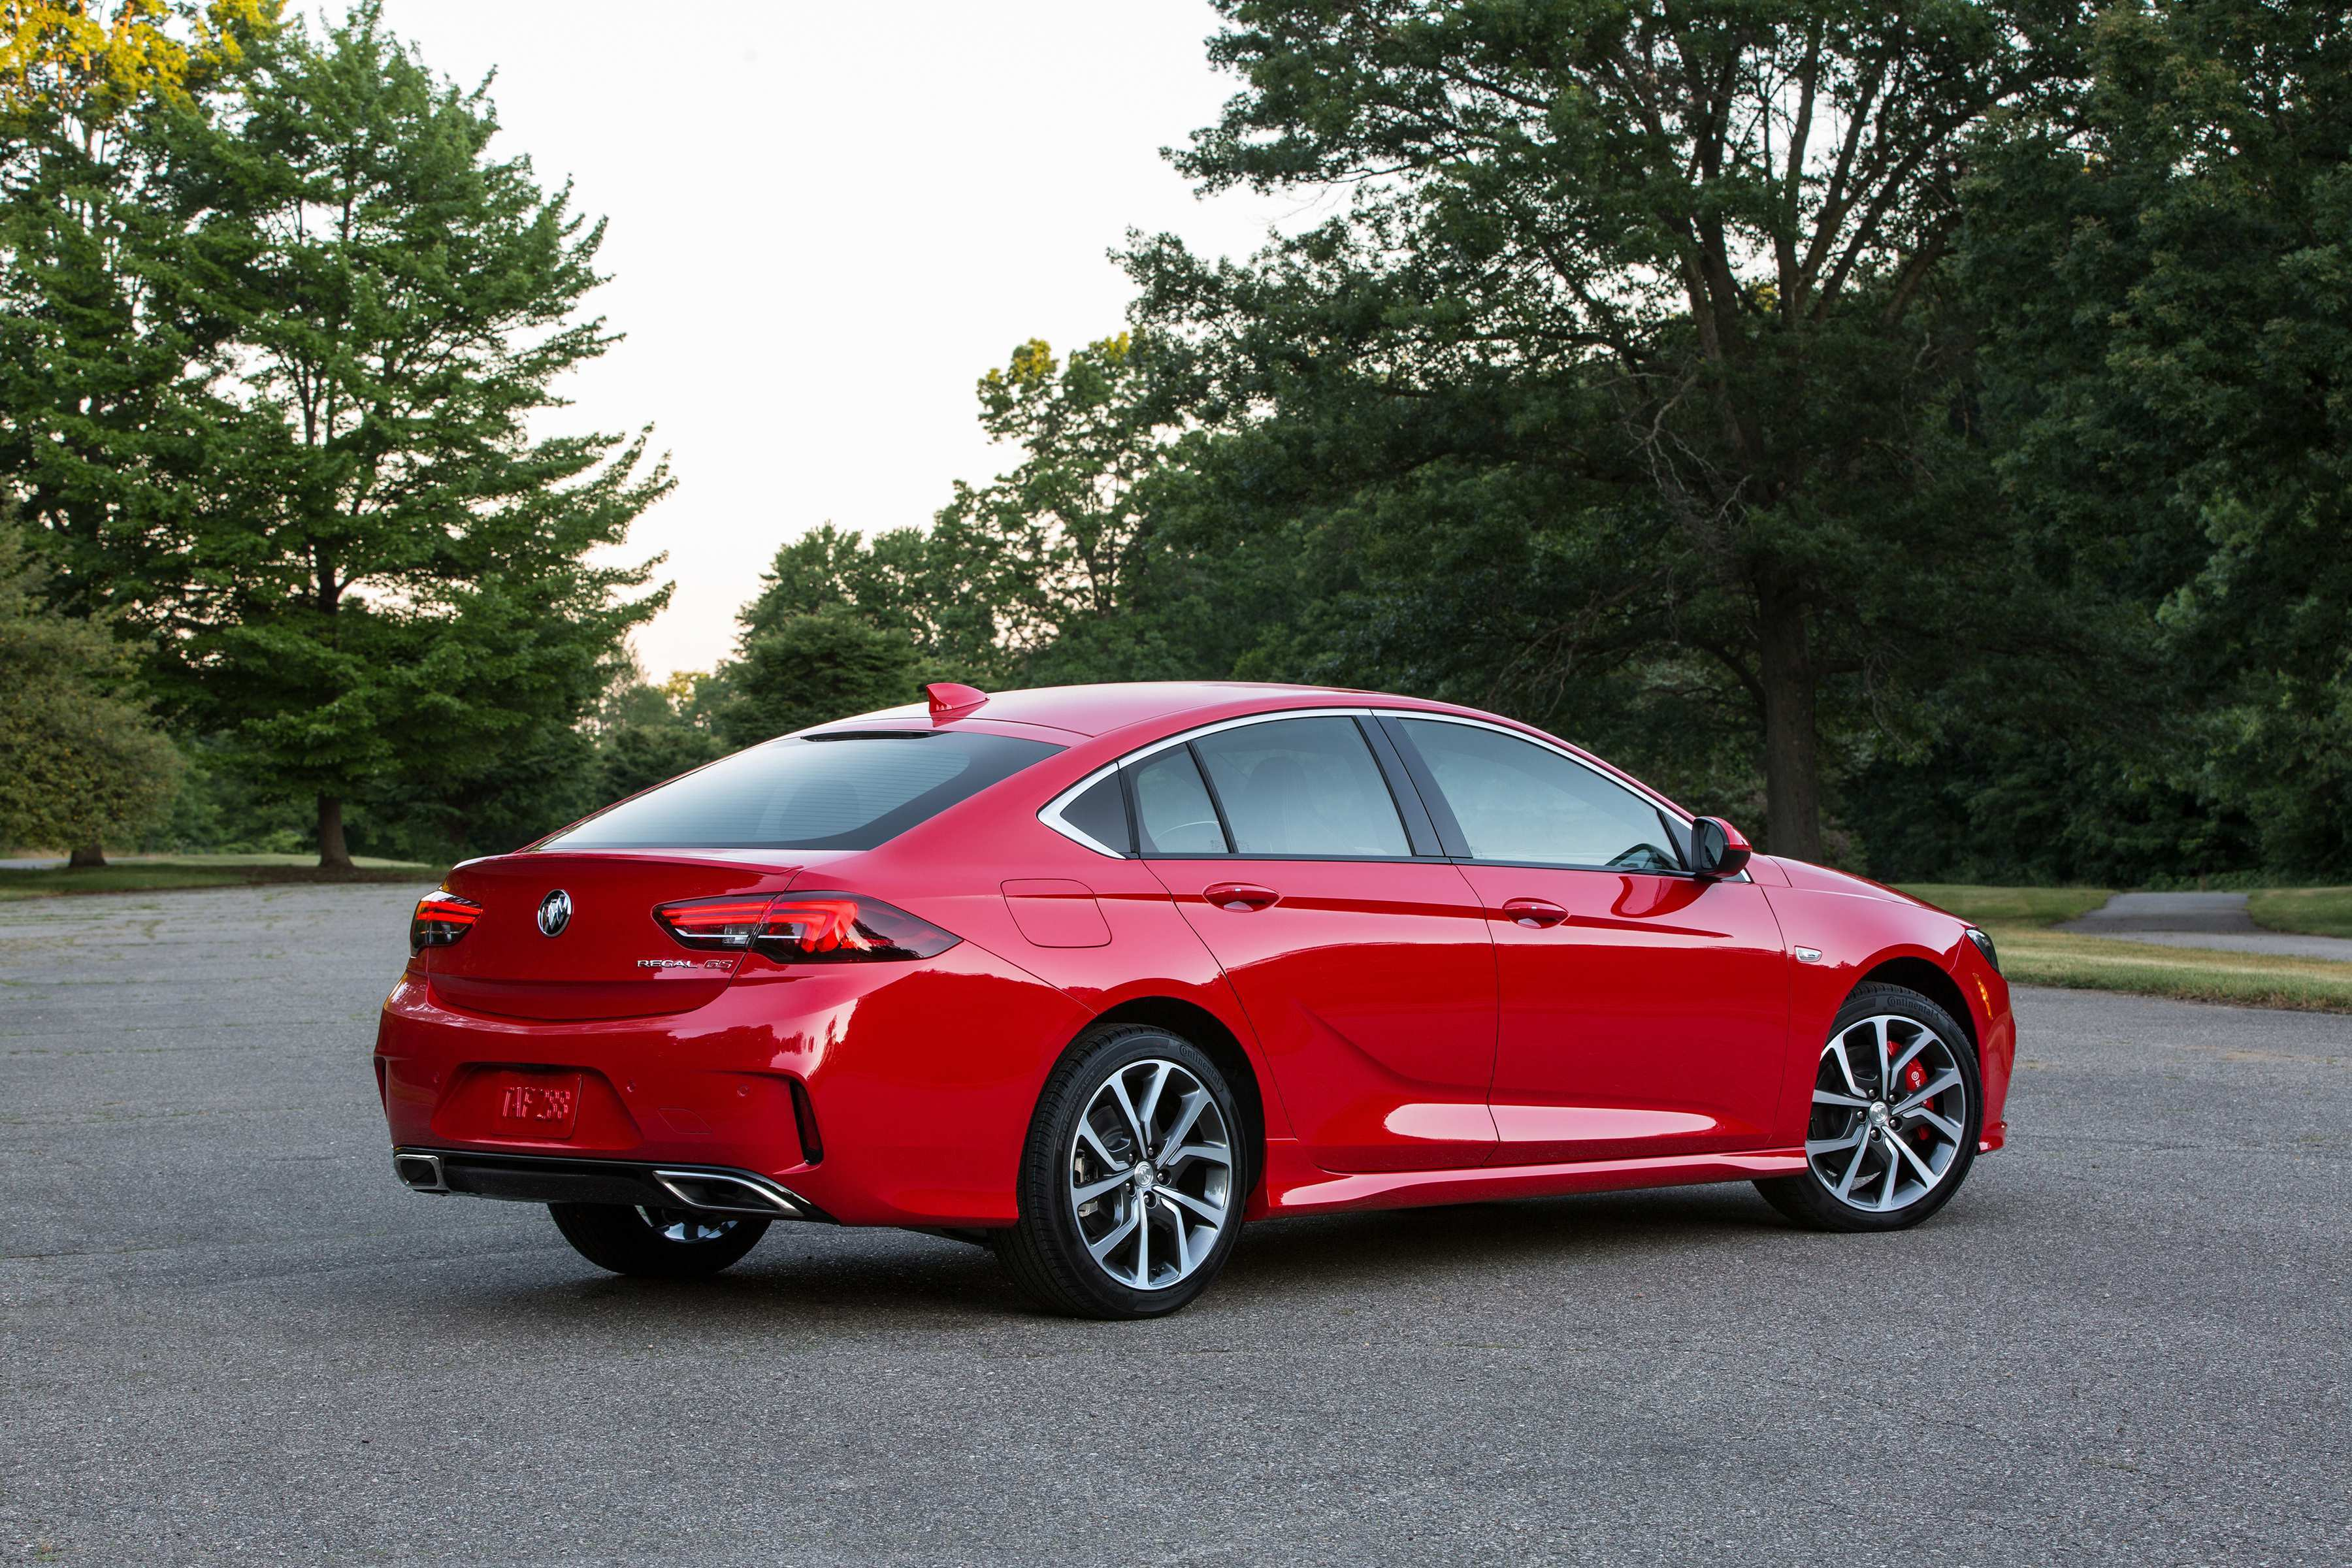 78 All New New 2019 Buick Regal Hatchback Concept Redesign And Review Exterior and Interior with New 2019 Buick Regal Hatchback Concept Redesign And Review